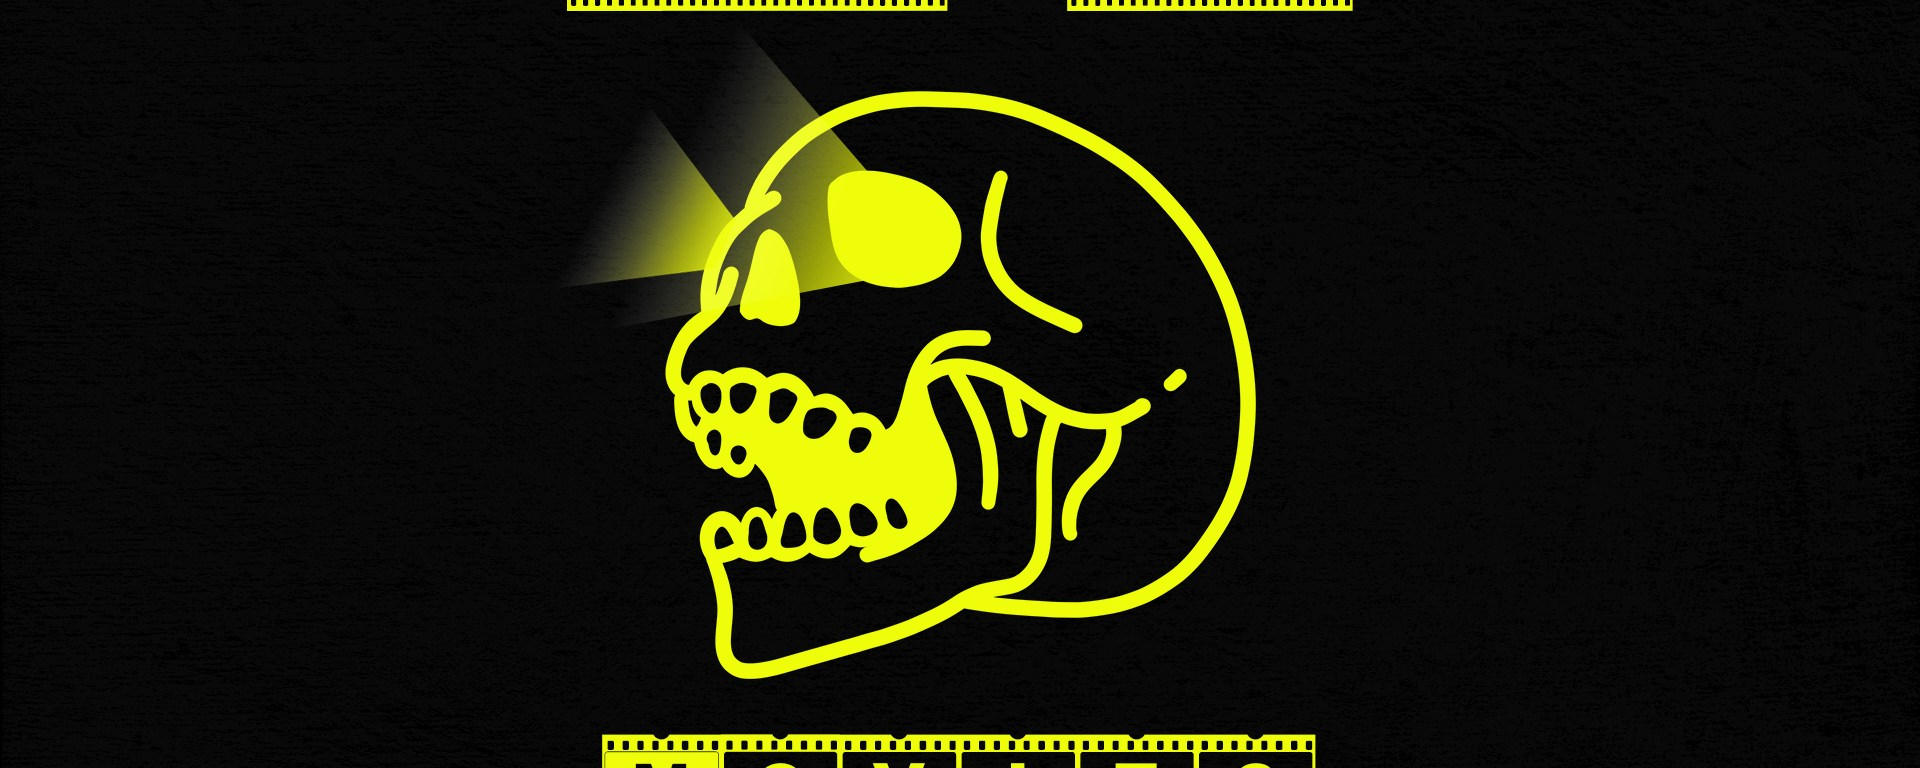 black background with yellow skull and yellow text saying good bad movies